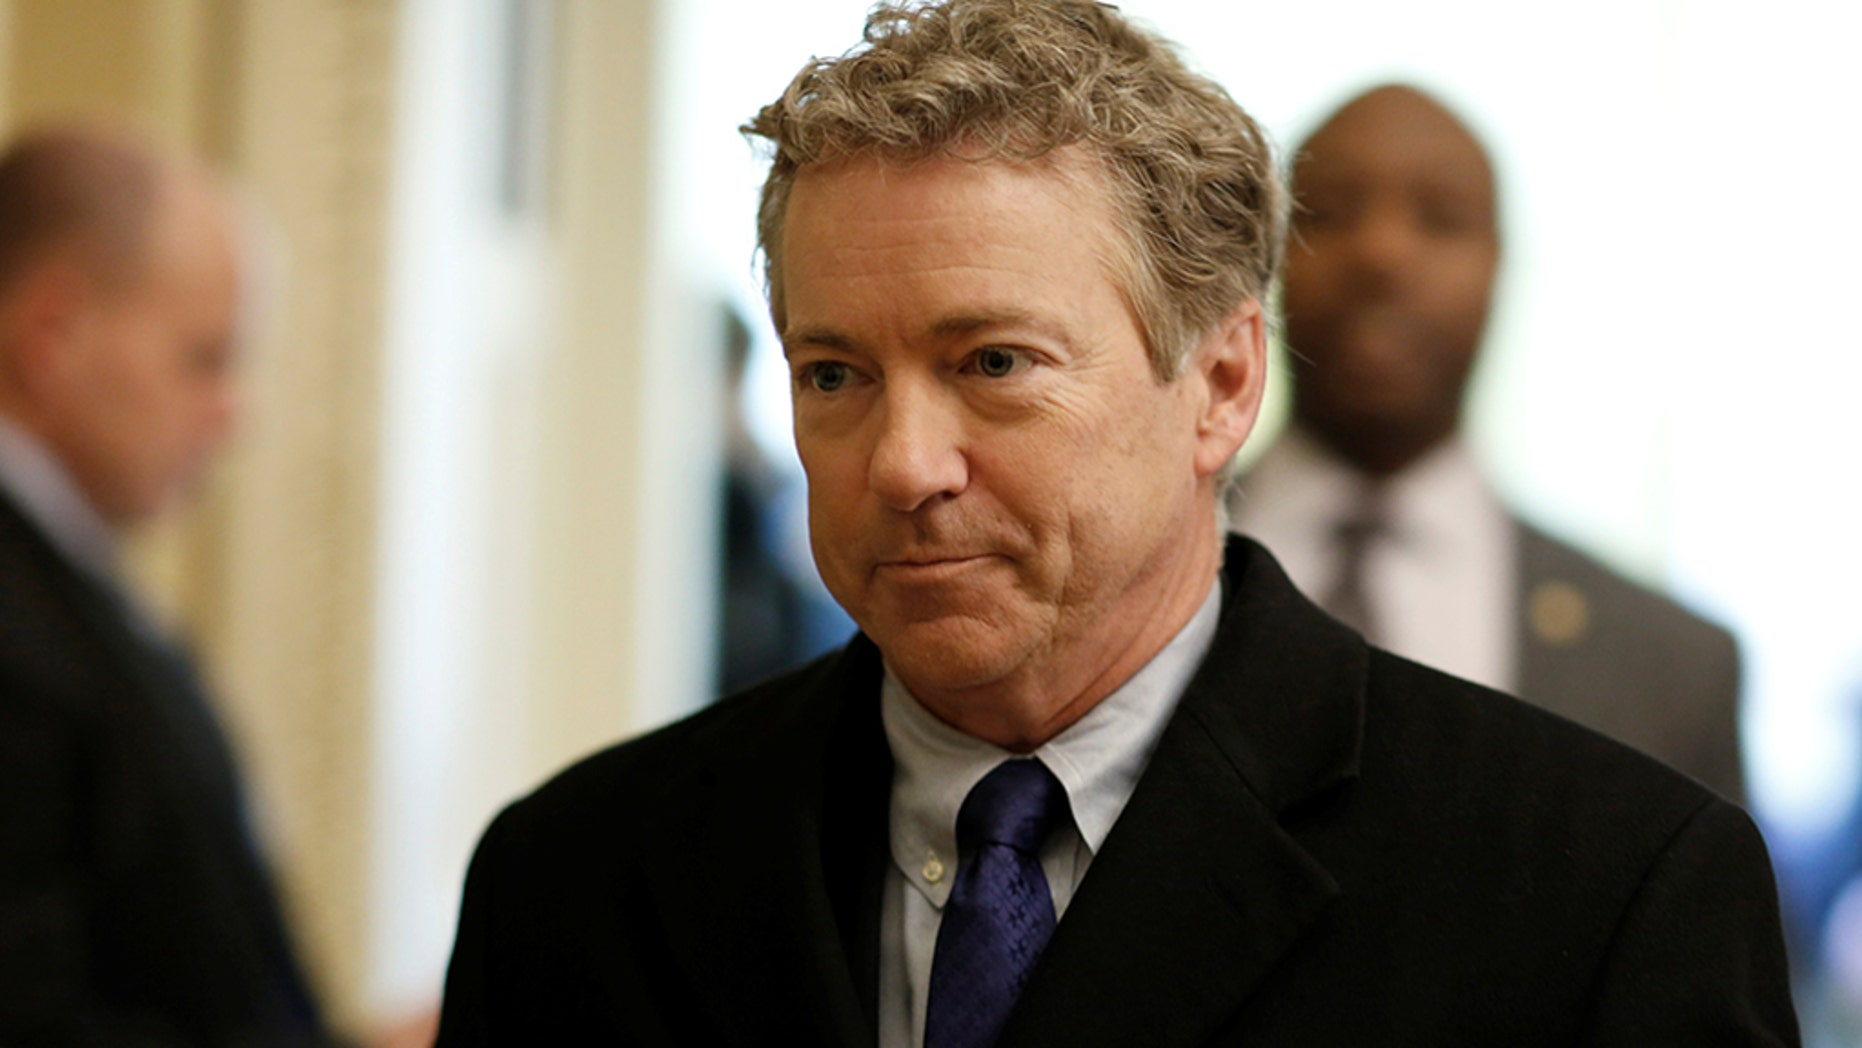 Senator Rand Paul wins damages after neighbour attack